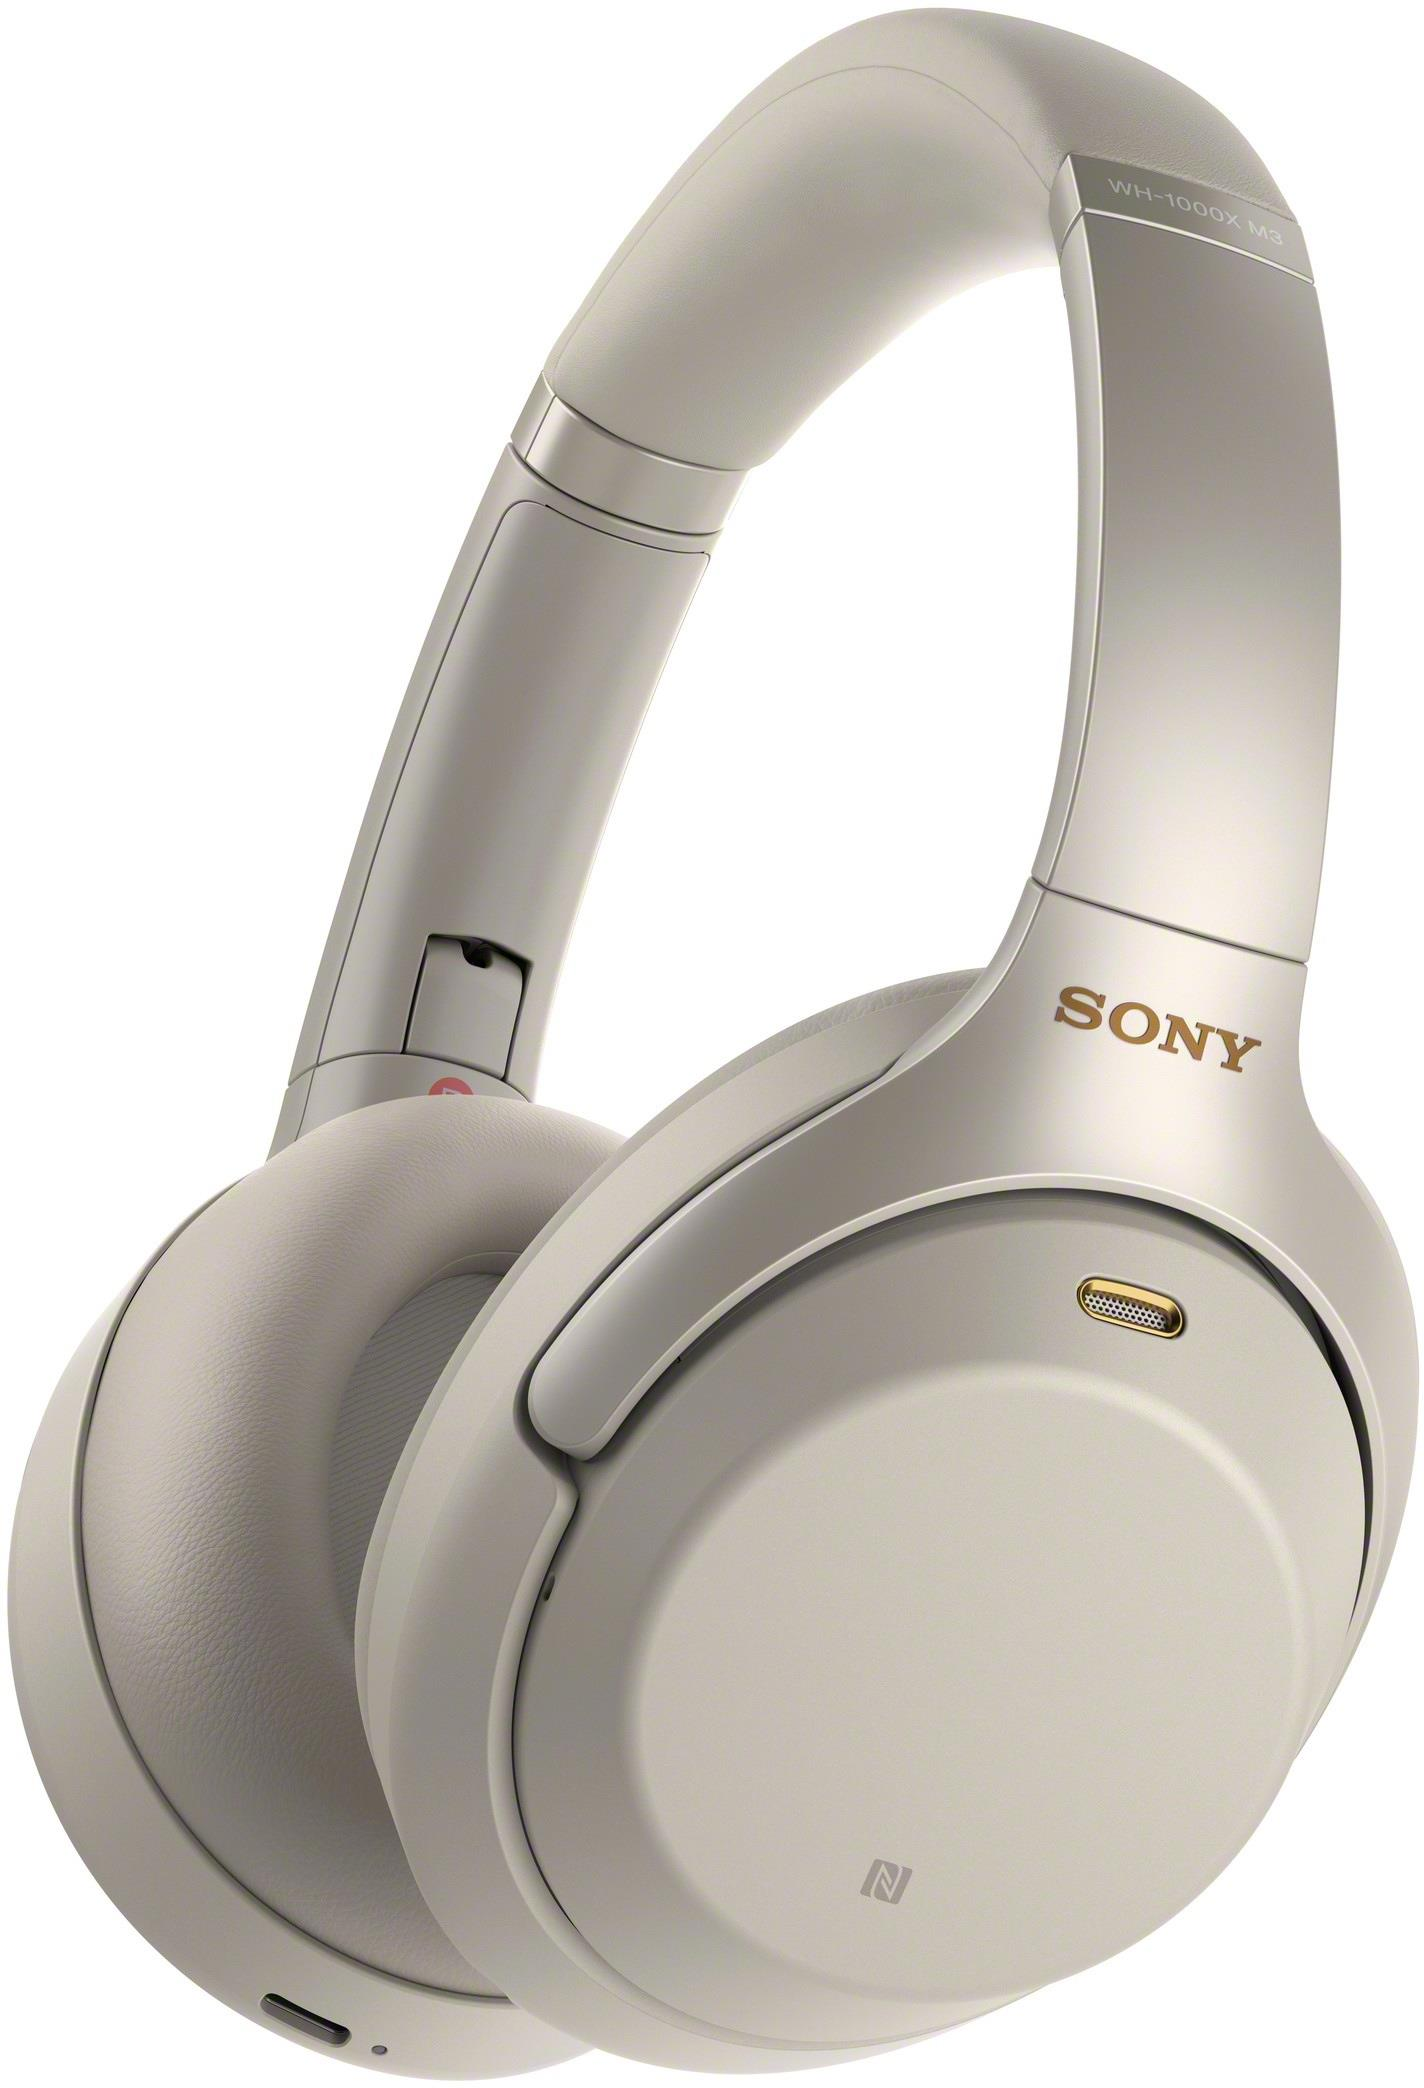 Sony Headphones  WH-1000XM3 Headband/On-Ear, 3.5mm (1/8 inch), Silver, Noice canceling, Wireless austiņas